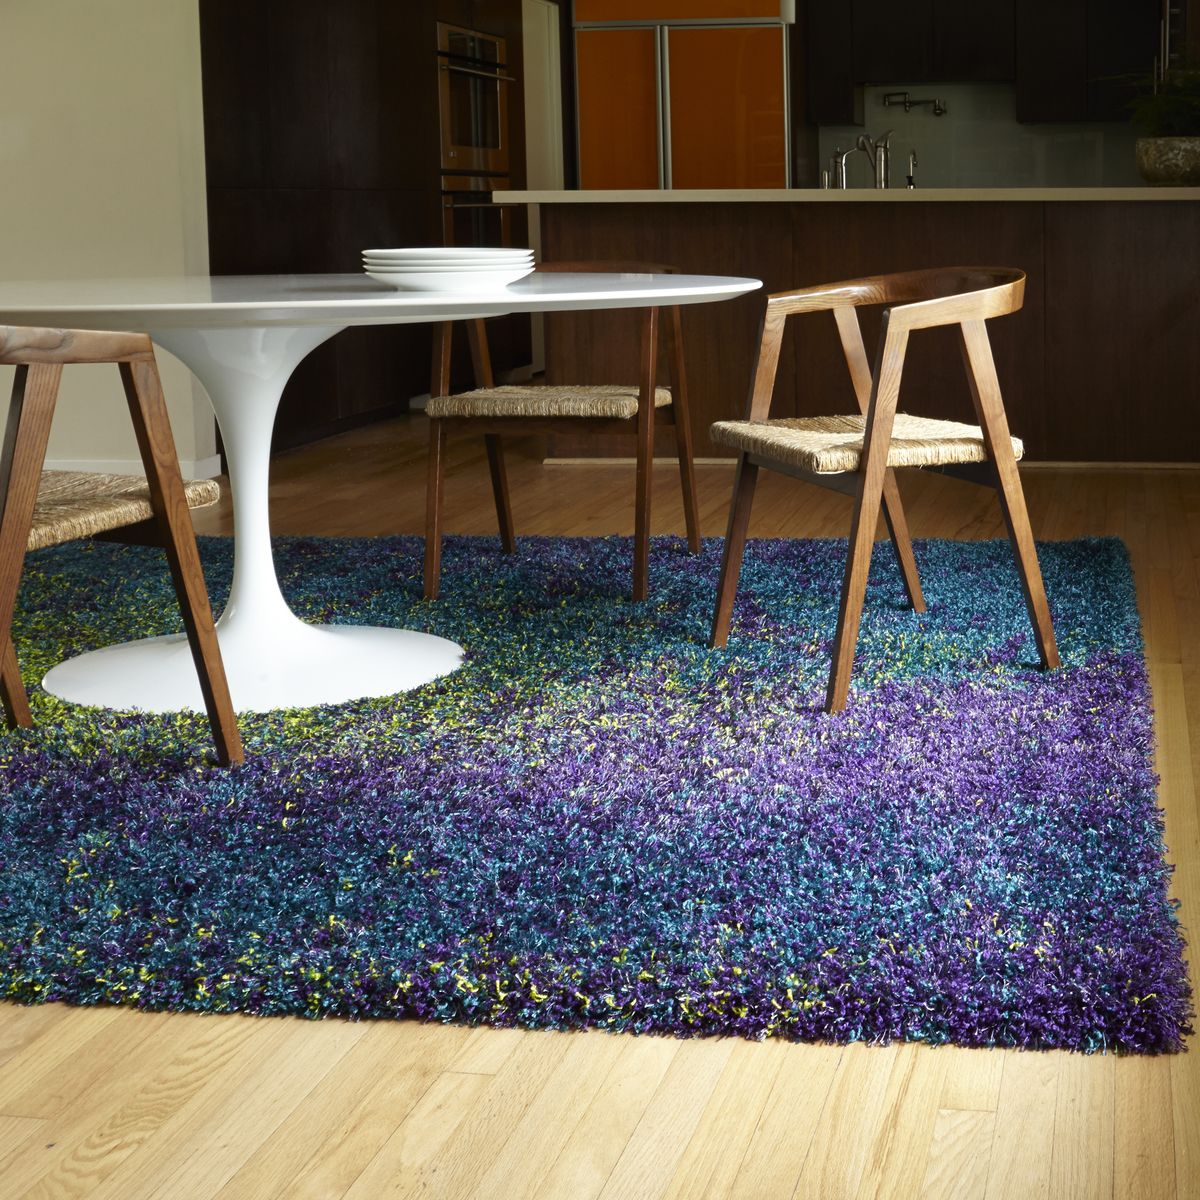 Green purple area rug - This Peacock Colored Shag Area Rug Contains Purple Blue And Lime Green A